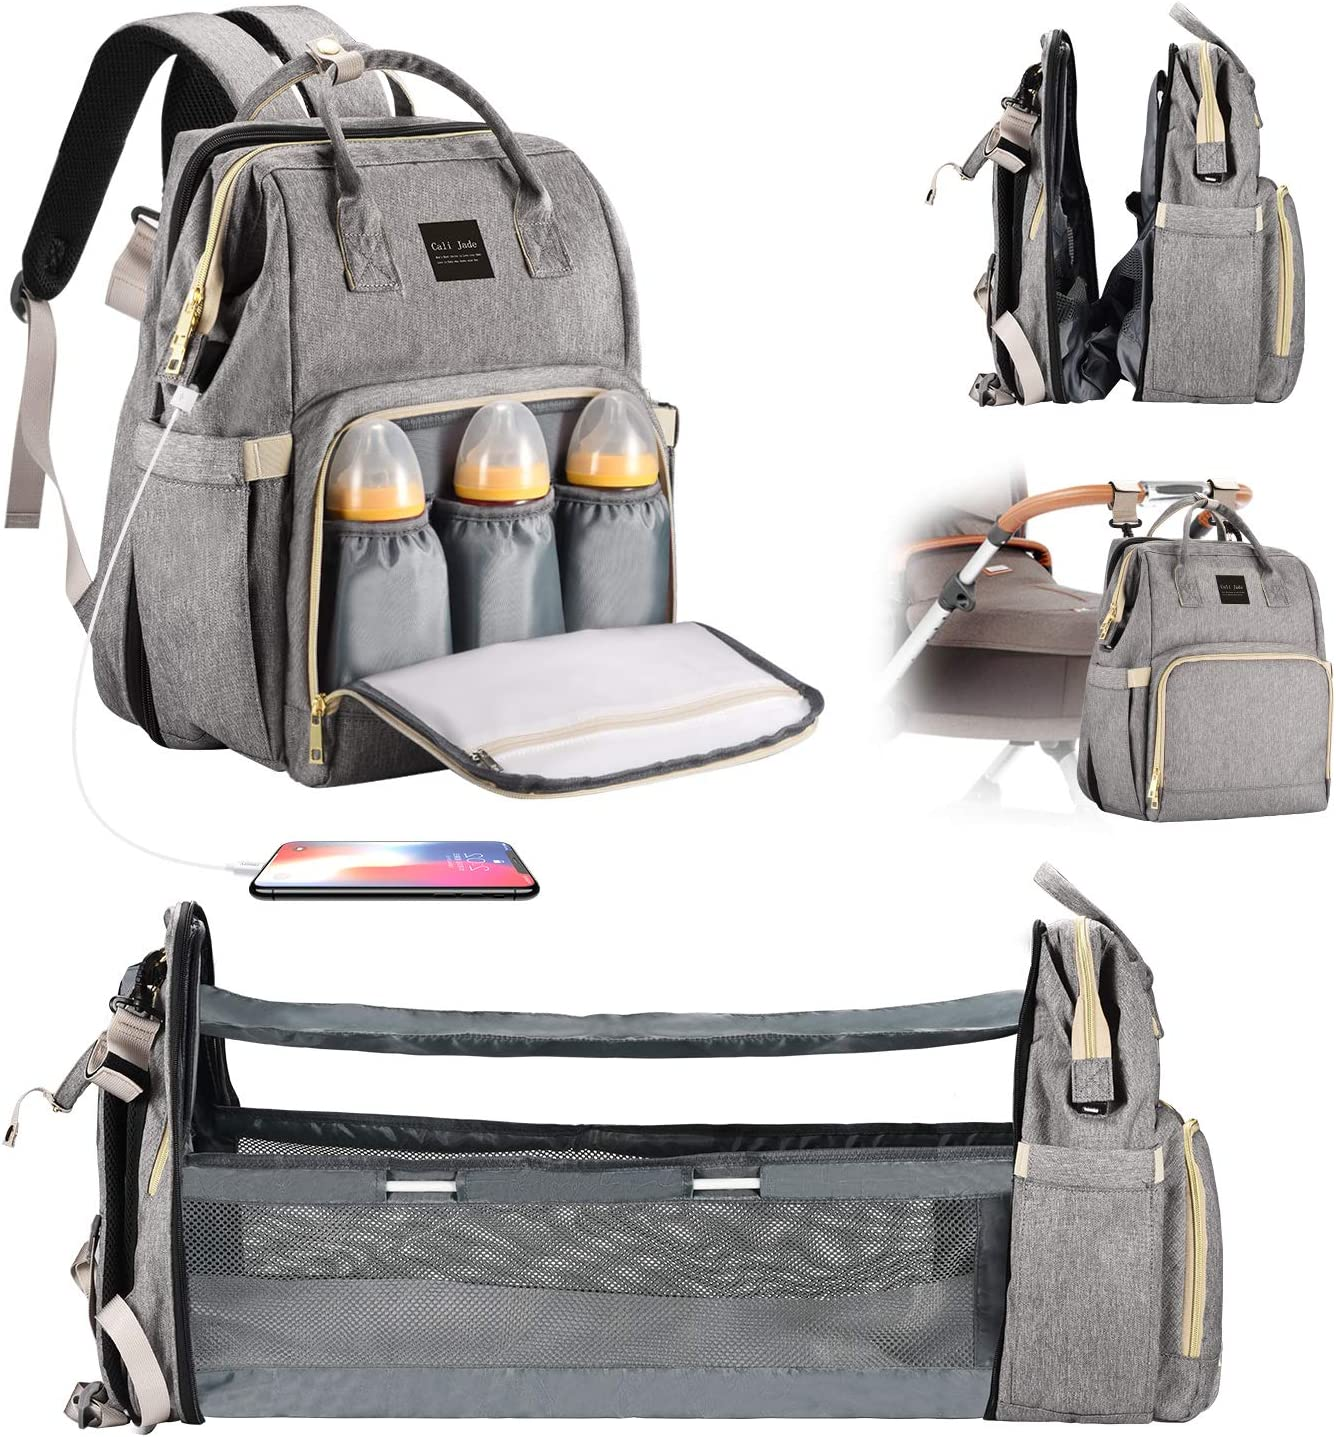 Cali Jade Diaper Bag Backpack with Changing Station Multifunctional Waterproof Large Capacity Travel Backpack, Foldable Baby Bed, USB Charging Port, Insulated Pockets, Mother Bag, Gray